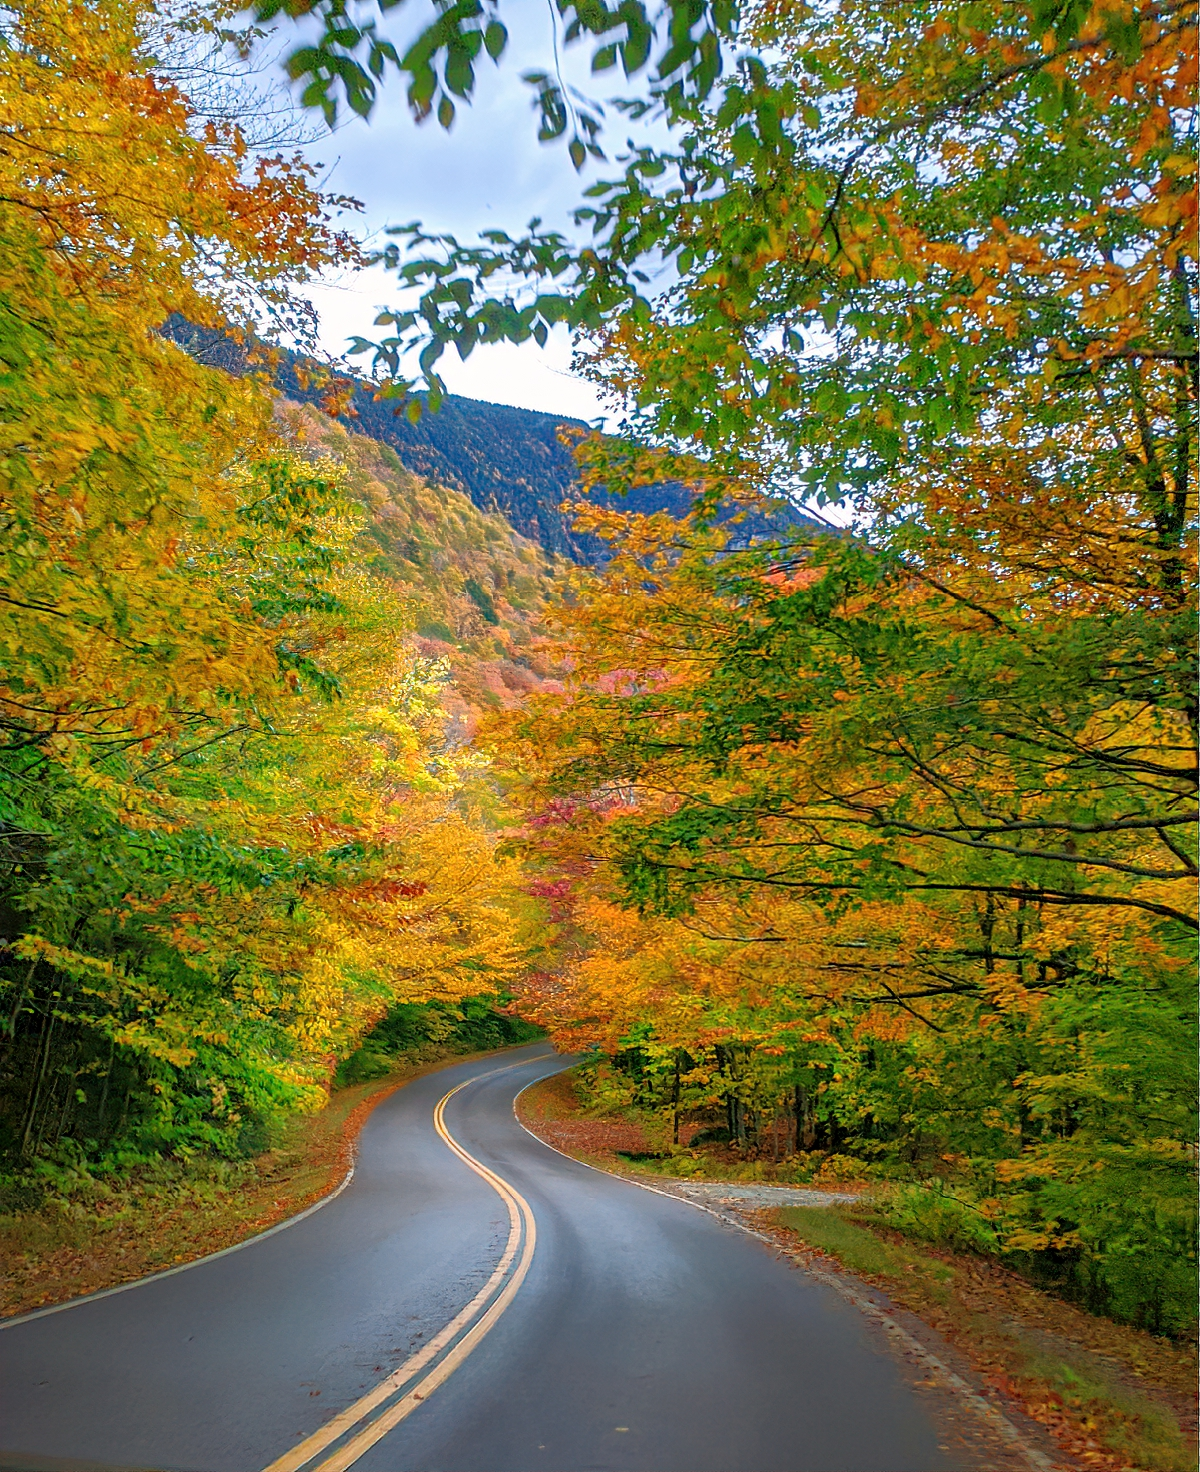 Smugglers' Notch drive is one of the most scenic drives in the Northeast.